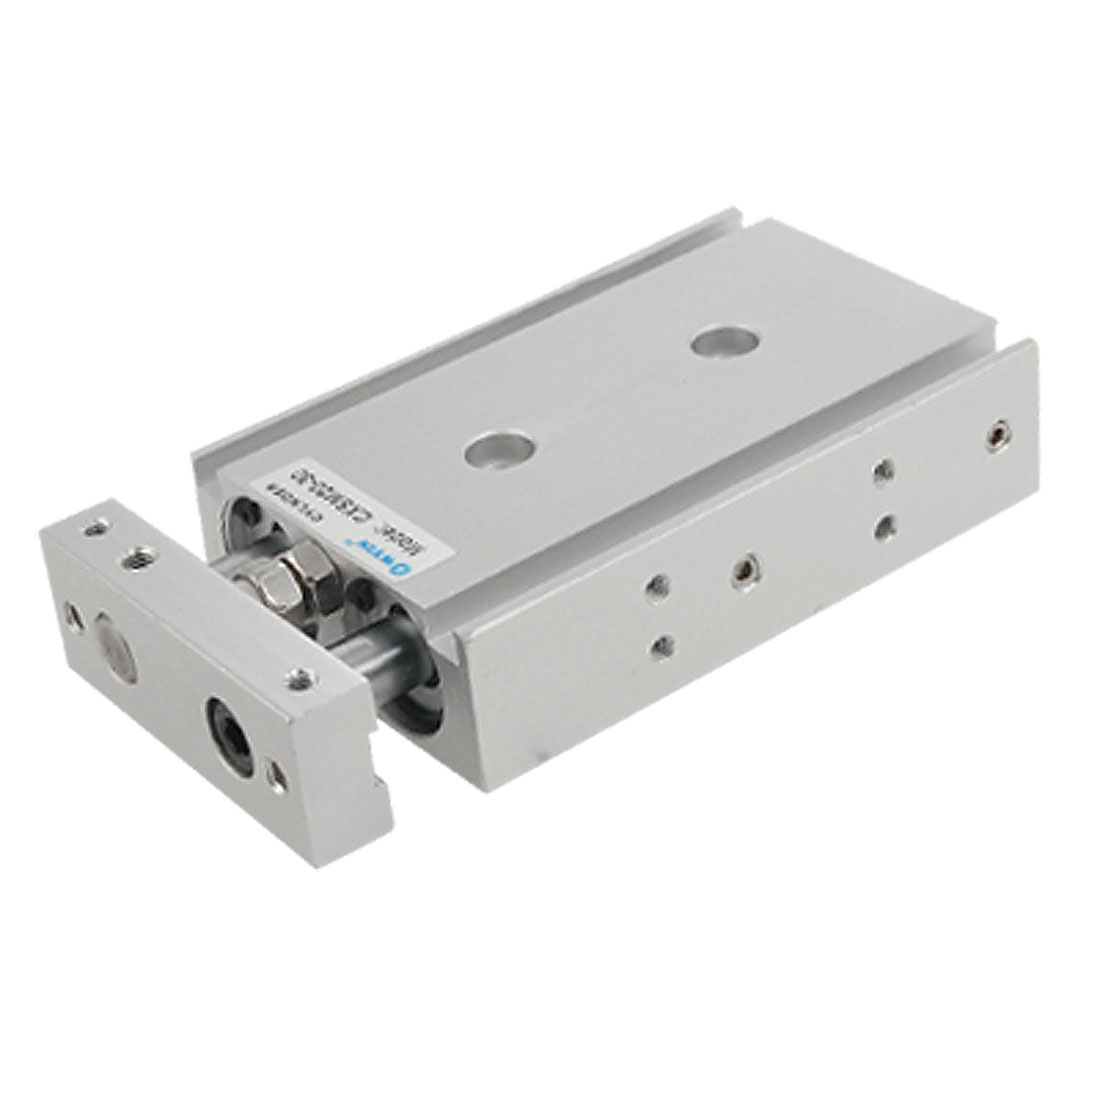 "CXSM20-30 0.7Mpa 25/32"" x 1 1/5"" Twin Rod Pneumatic Cylinder"